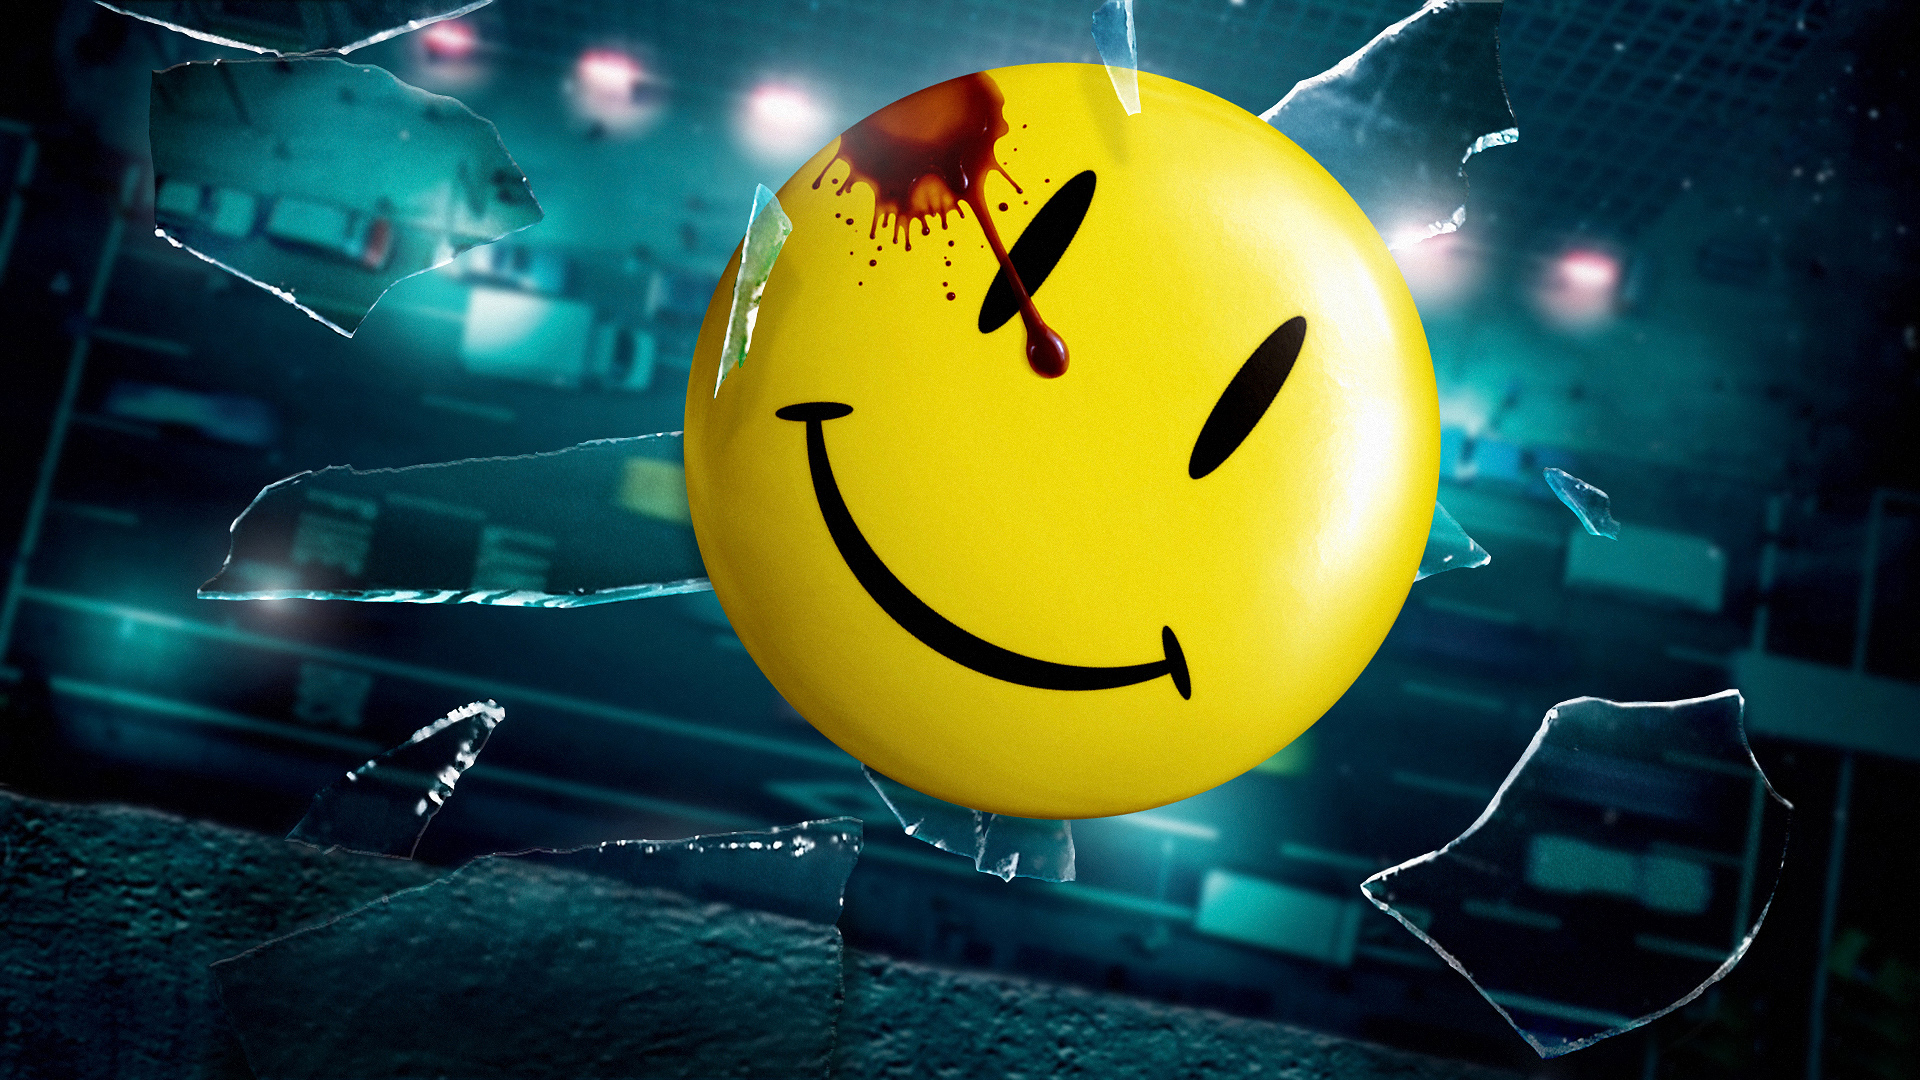 Watchmen Smiley wallpaper